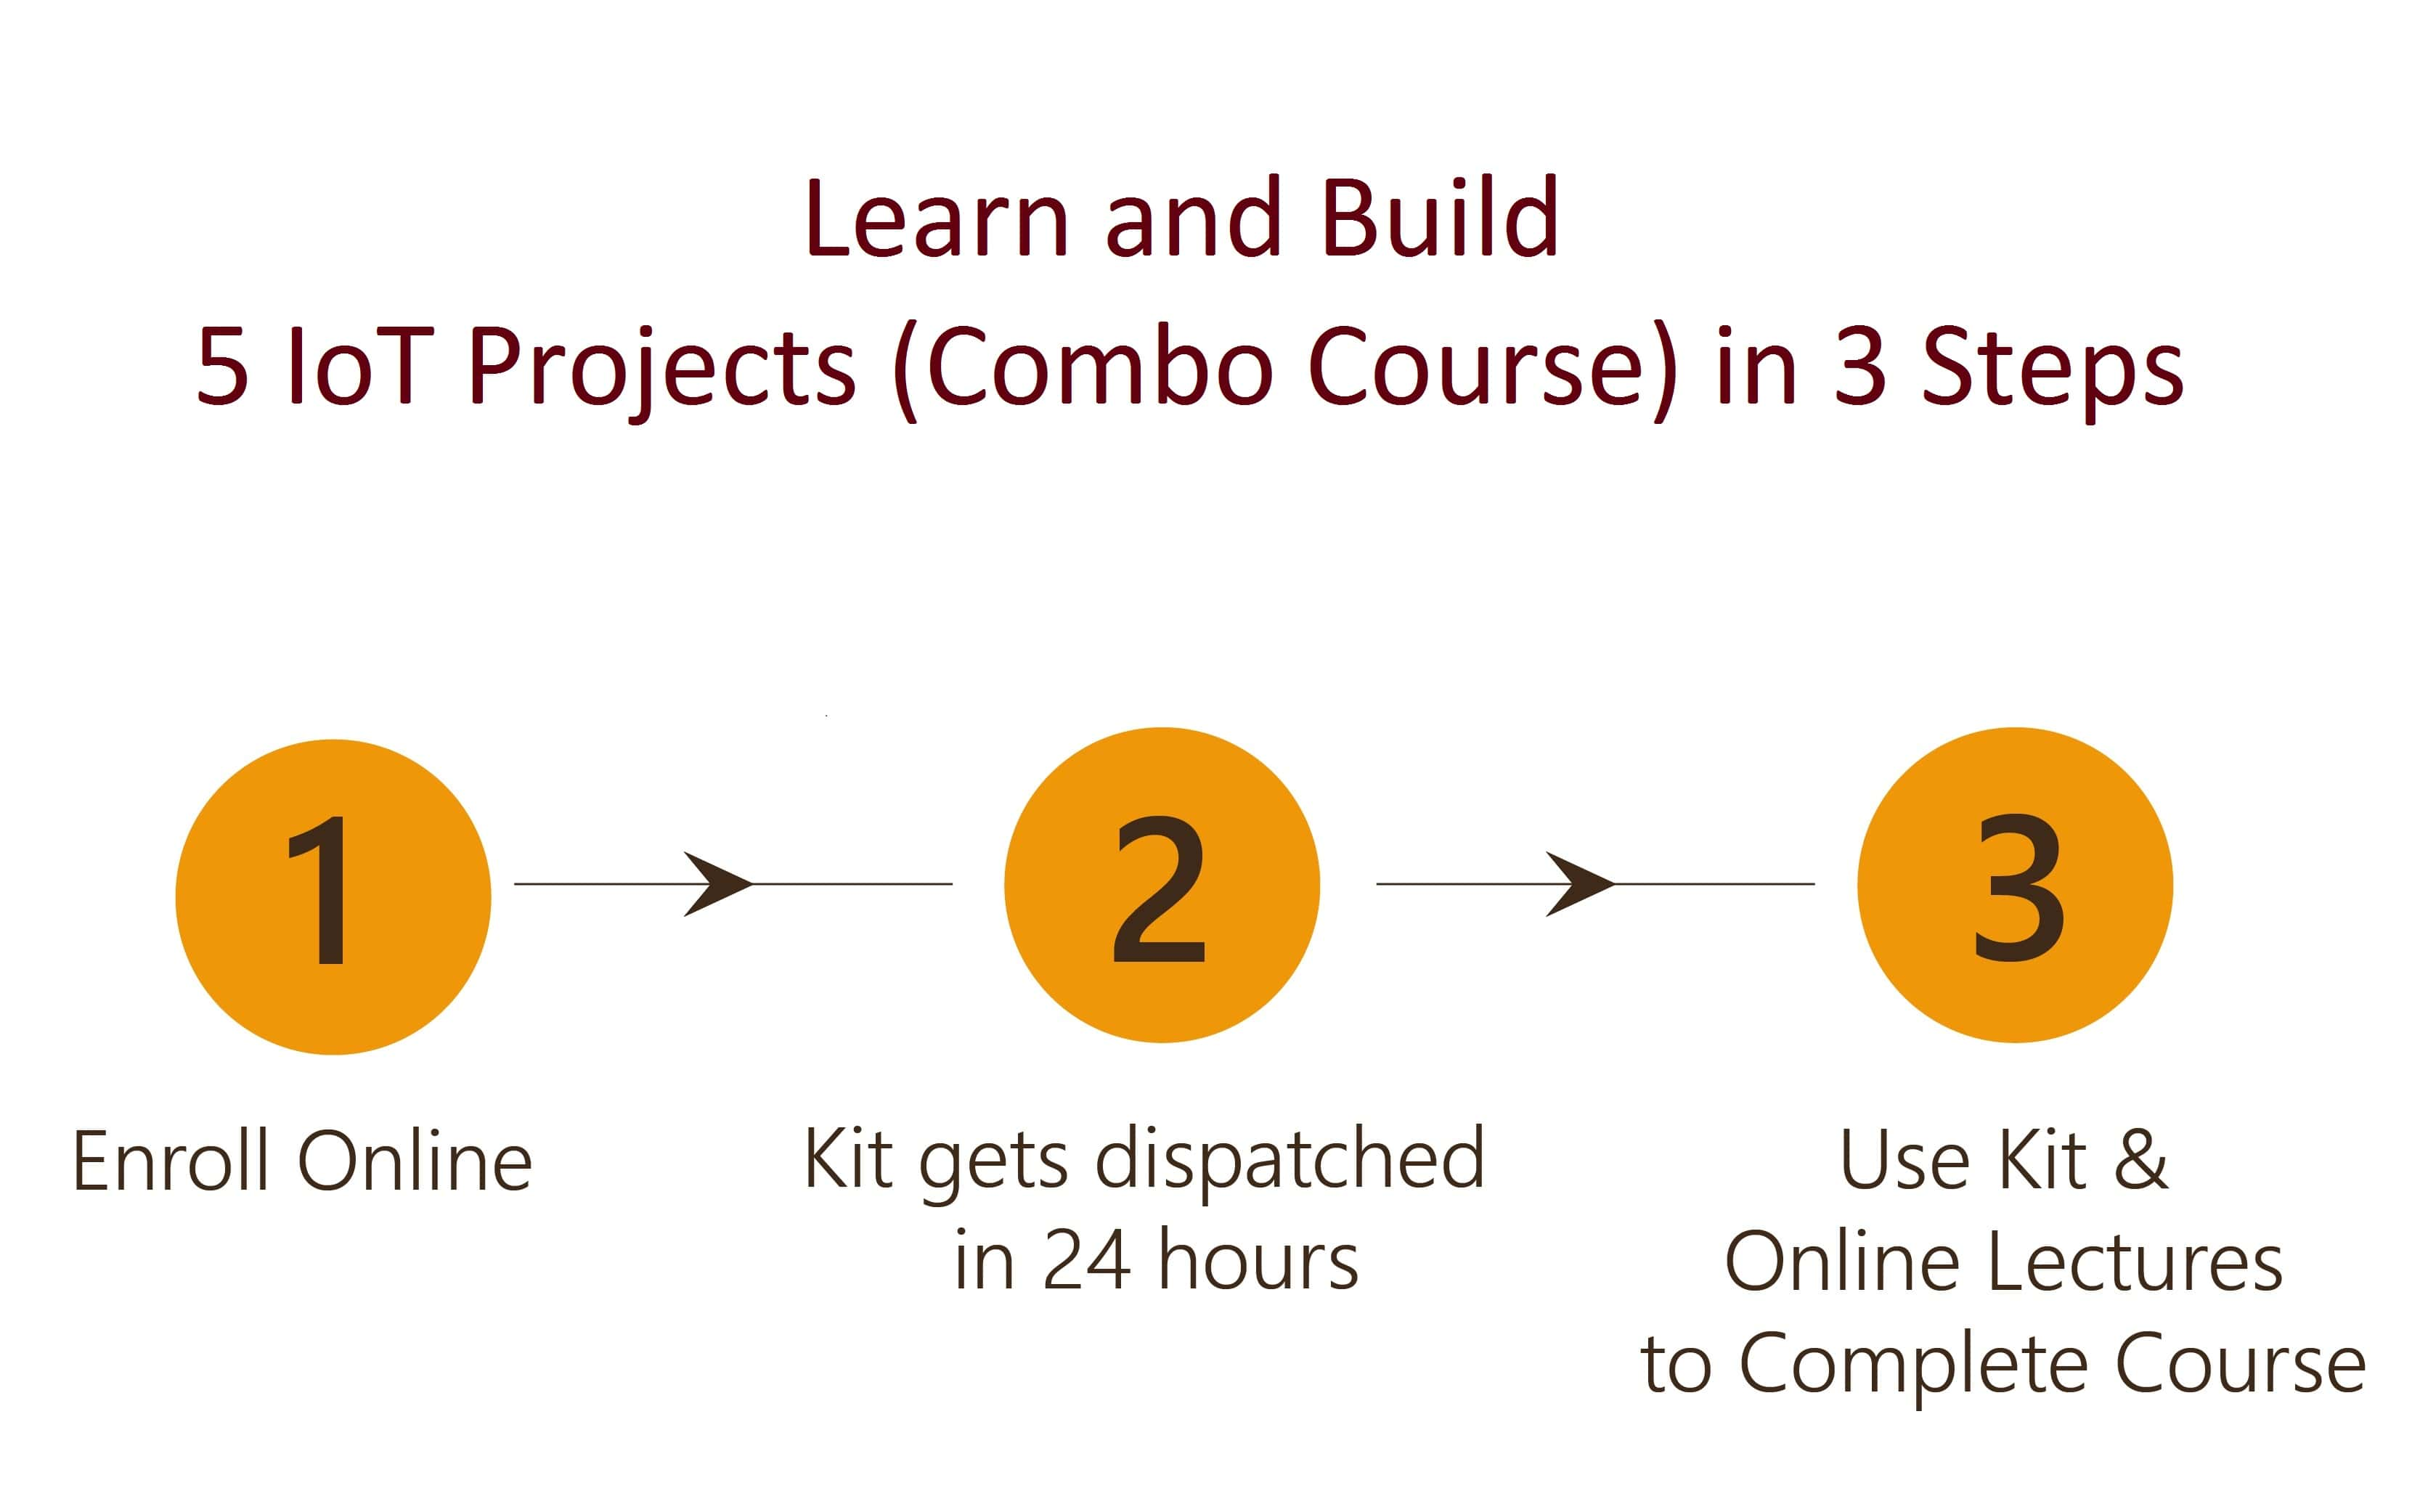 Design and Build 5 IoT Projects(Combo Course) in 3 Steps